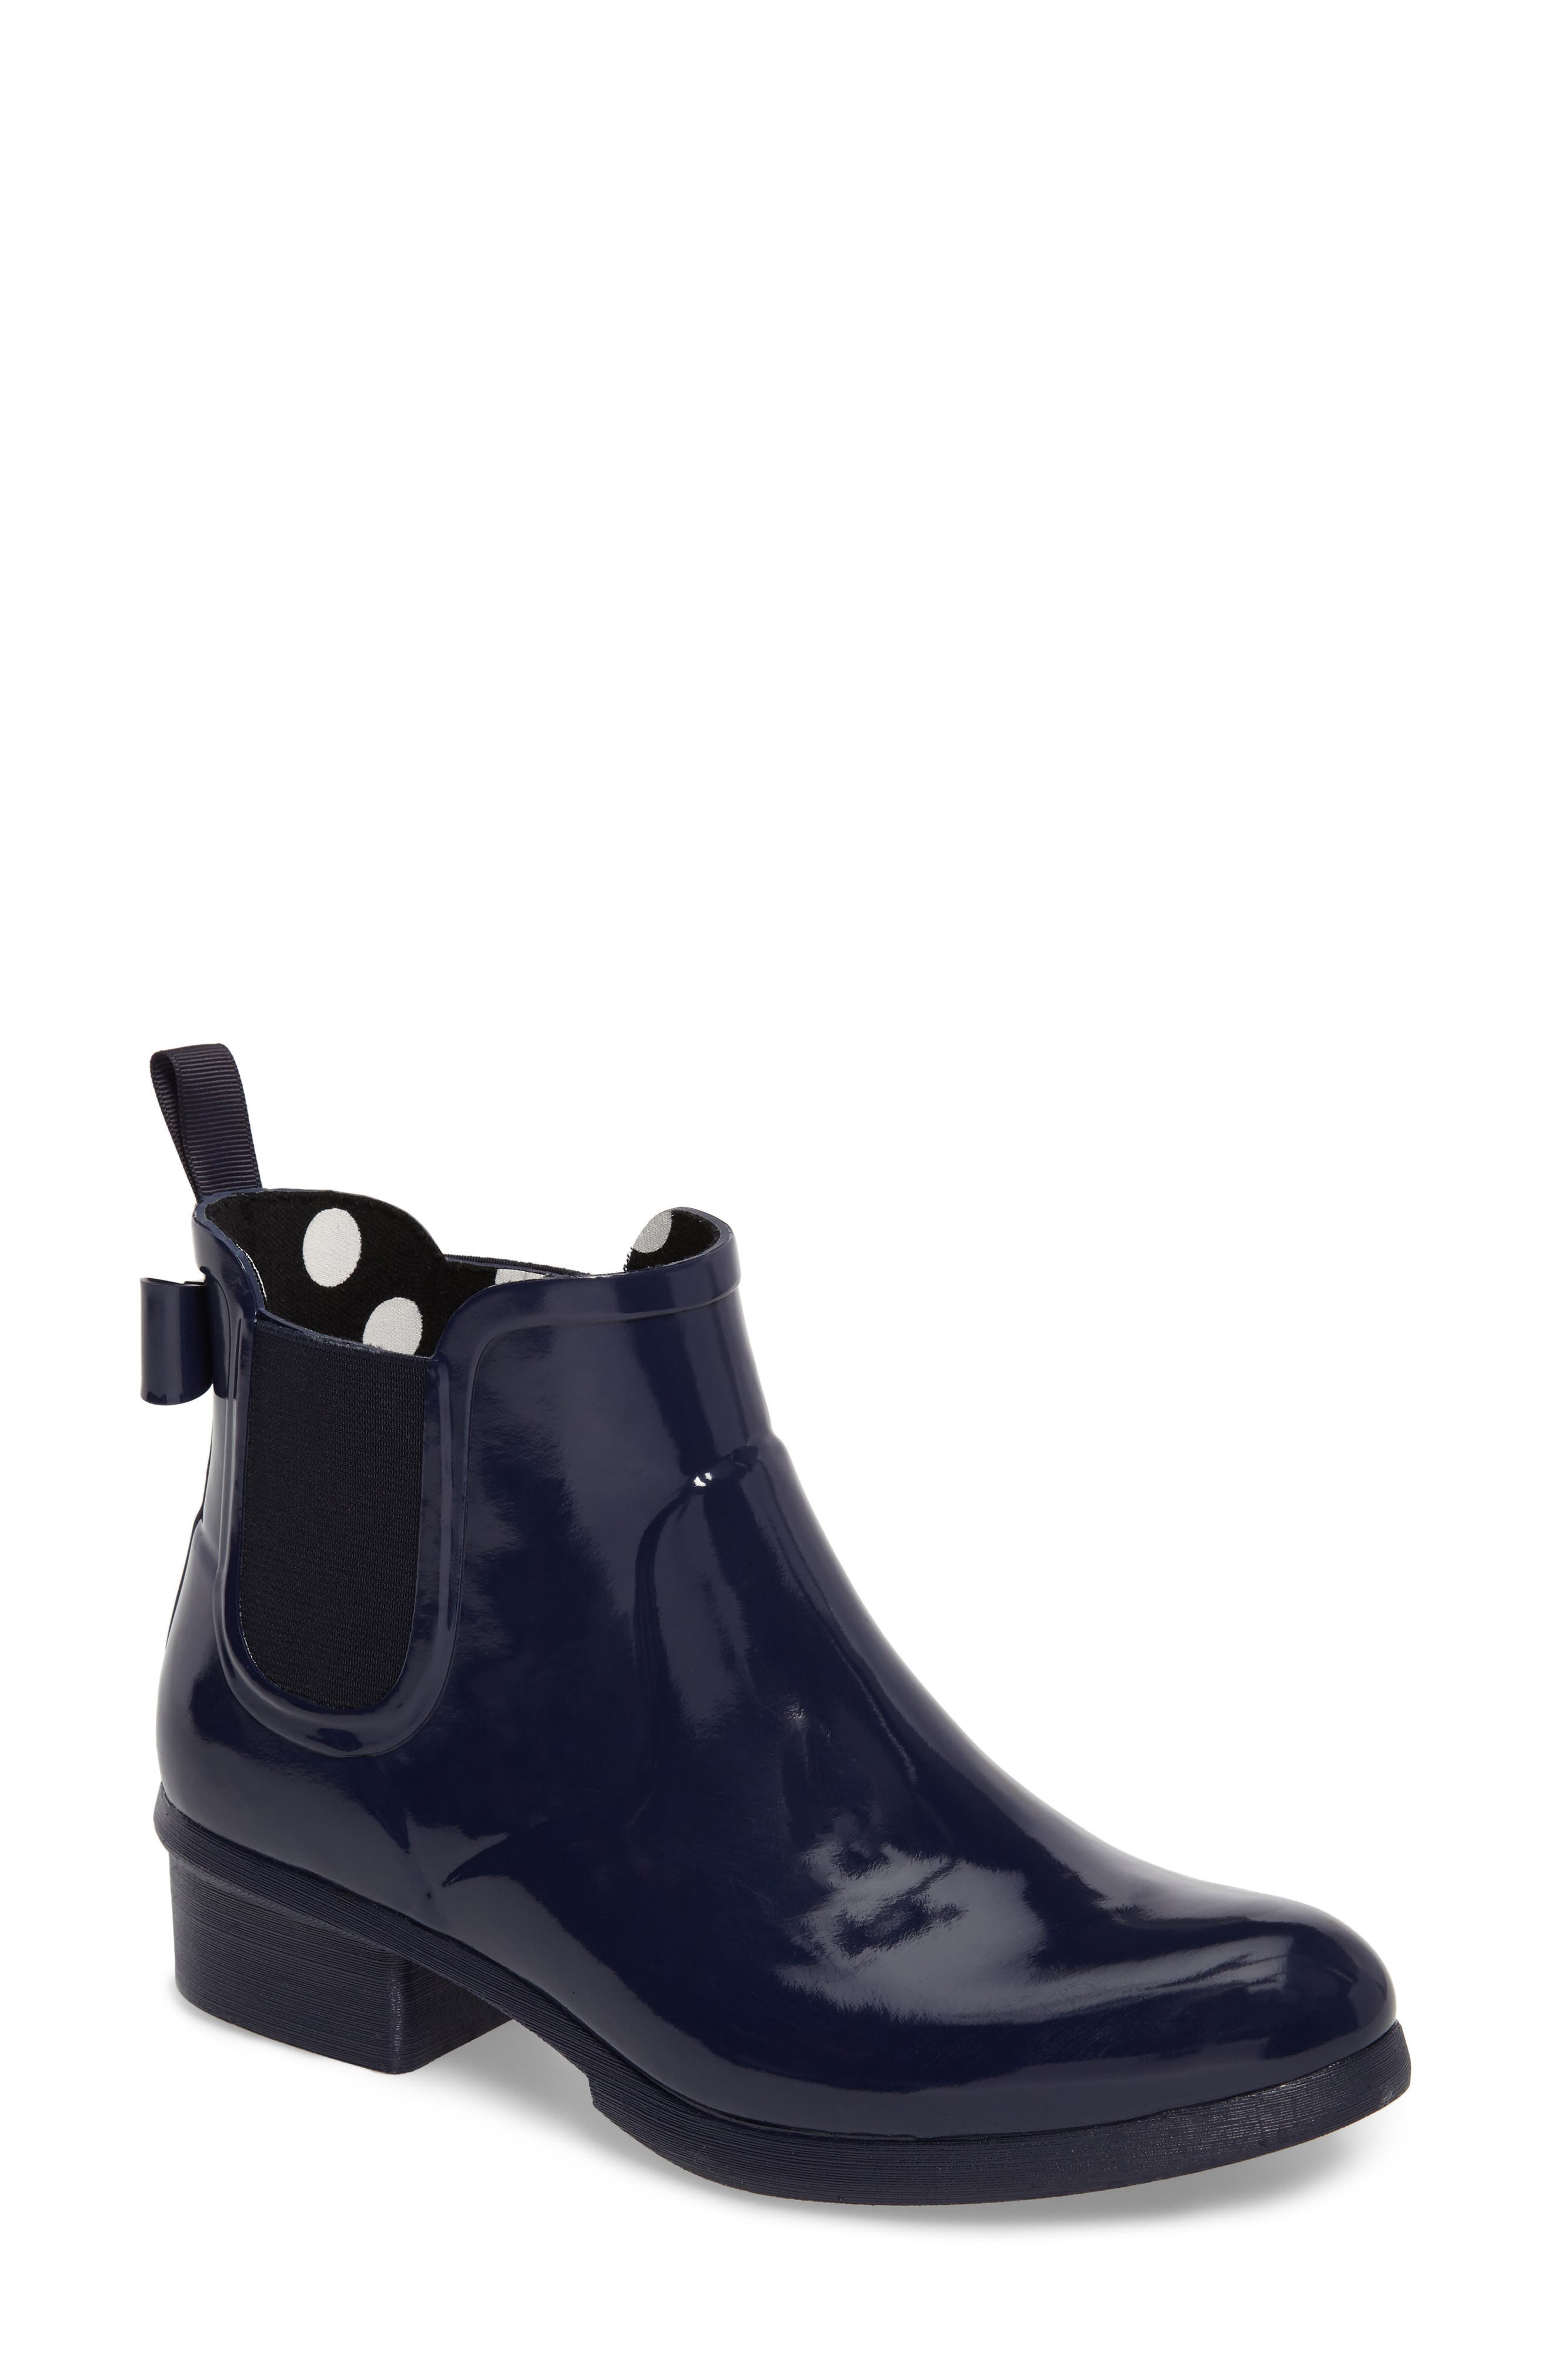 telly chelsea rain bootie,                         Main,                         color, New Navy Shiny Rubber